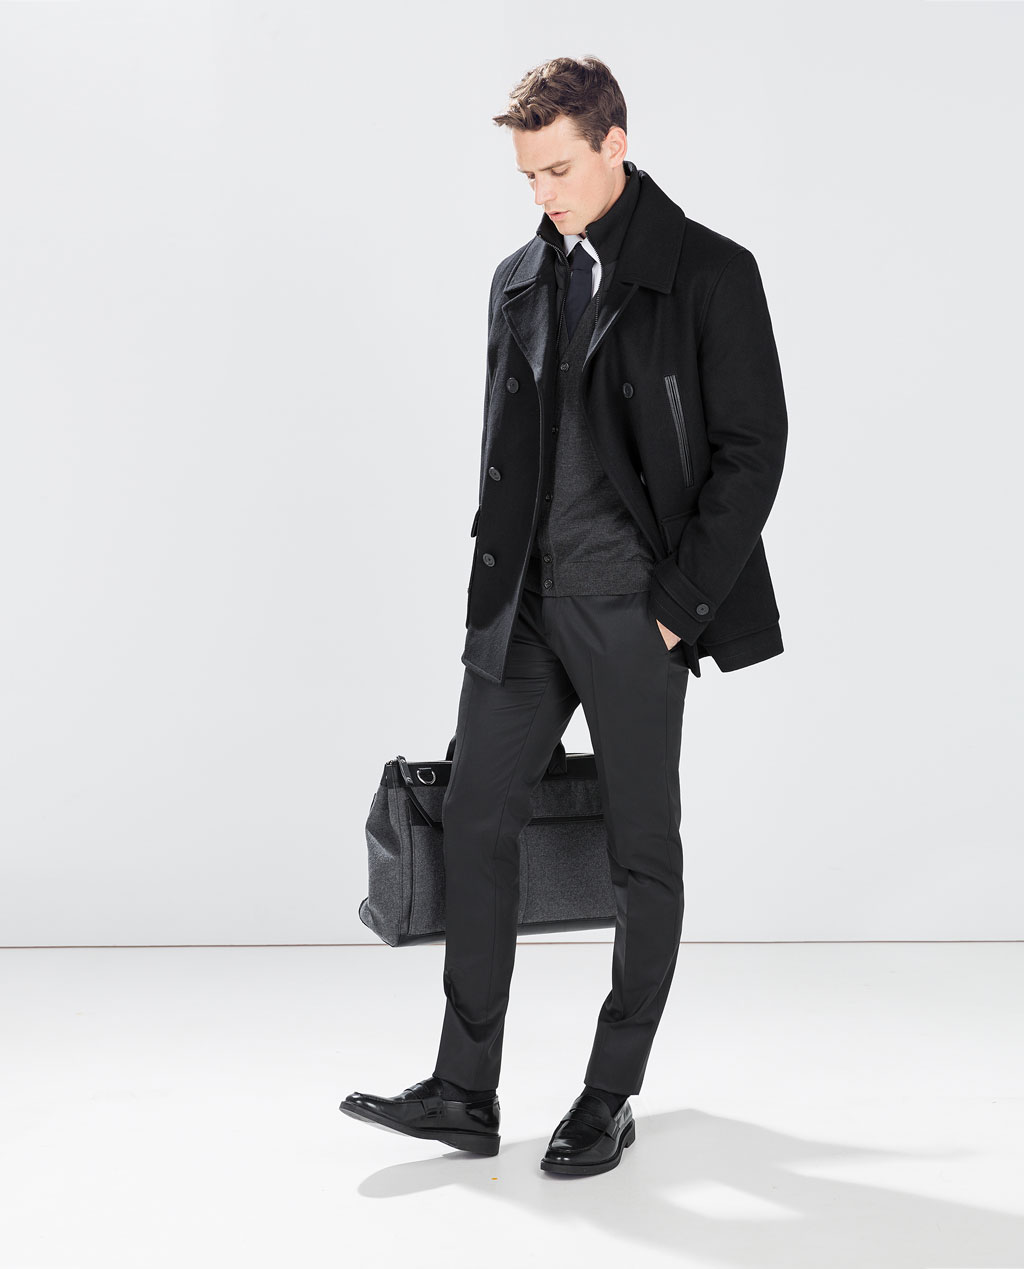 Zara Canada Sales: Select Pieces Are Up to 70% Off With ...